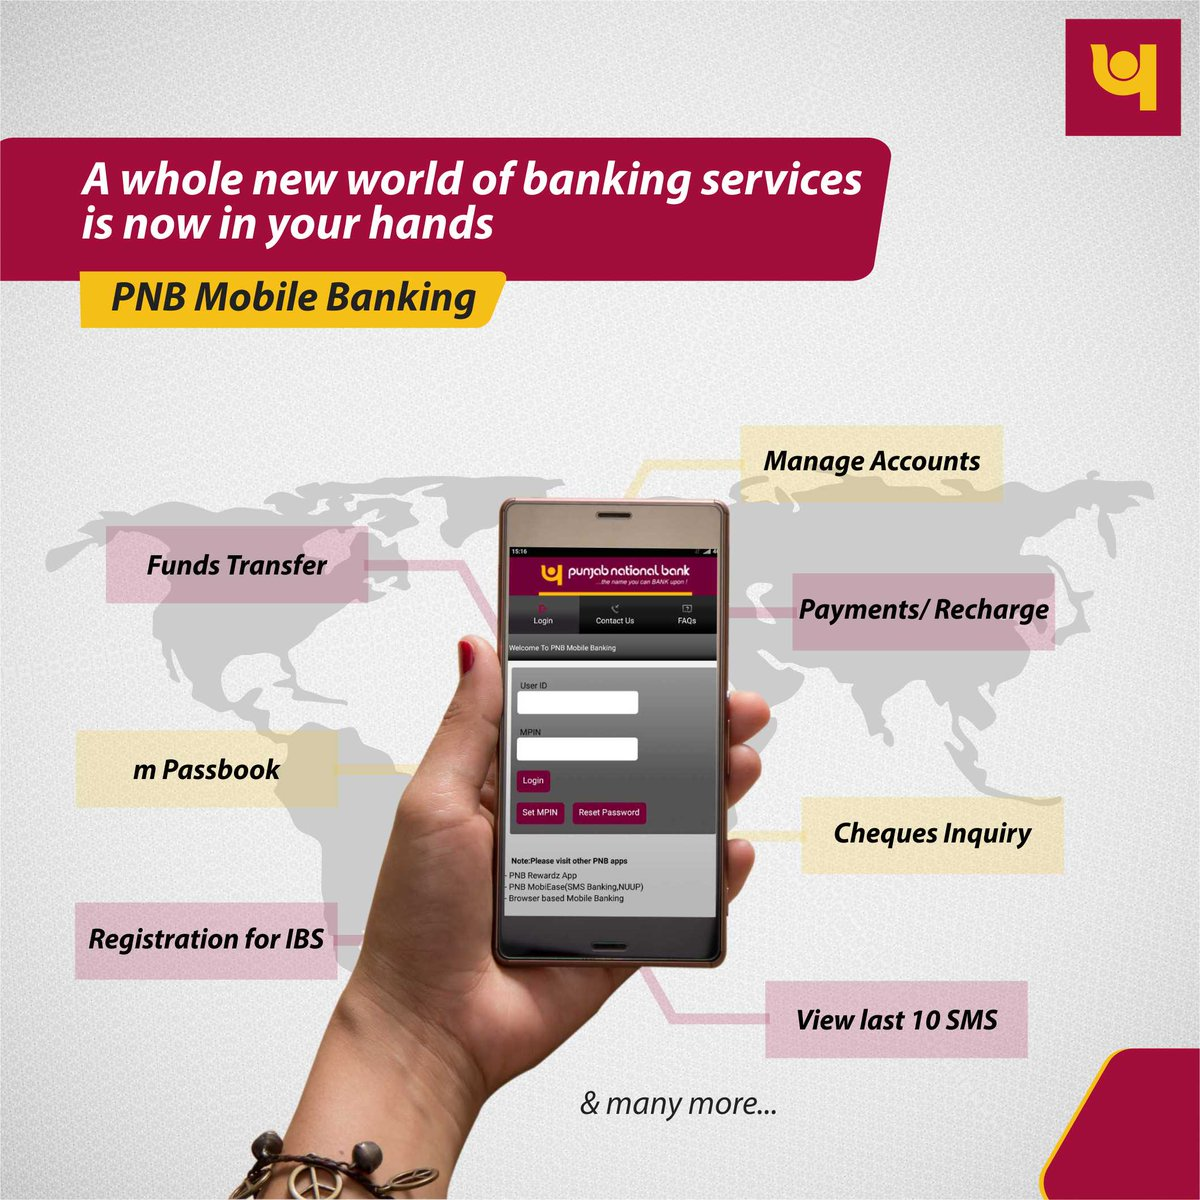 Punjab National Bank on Twitter: